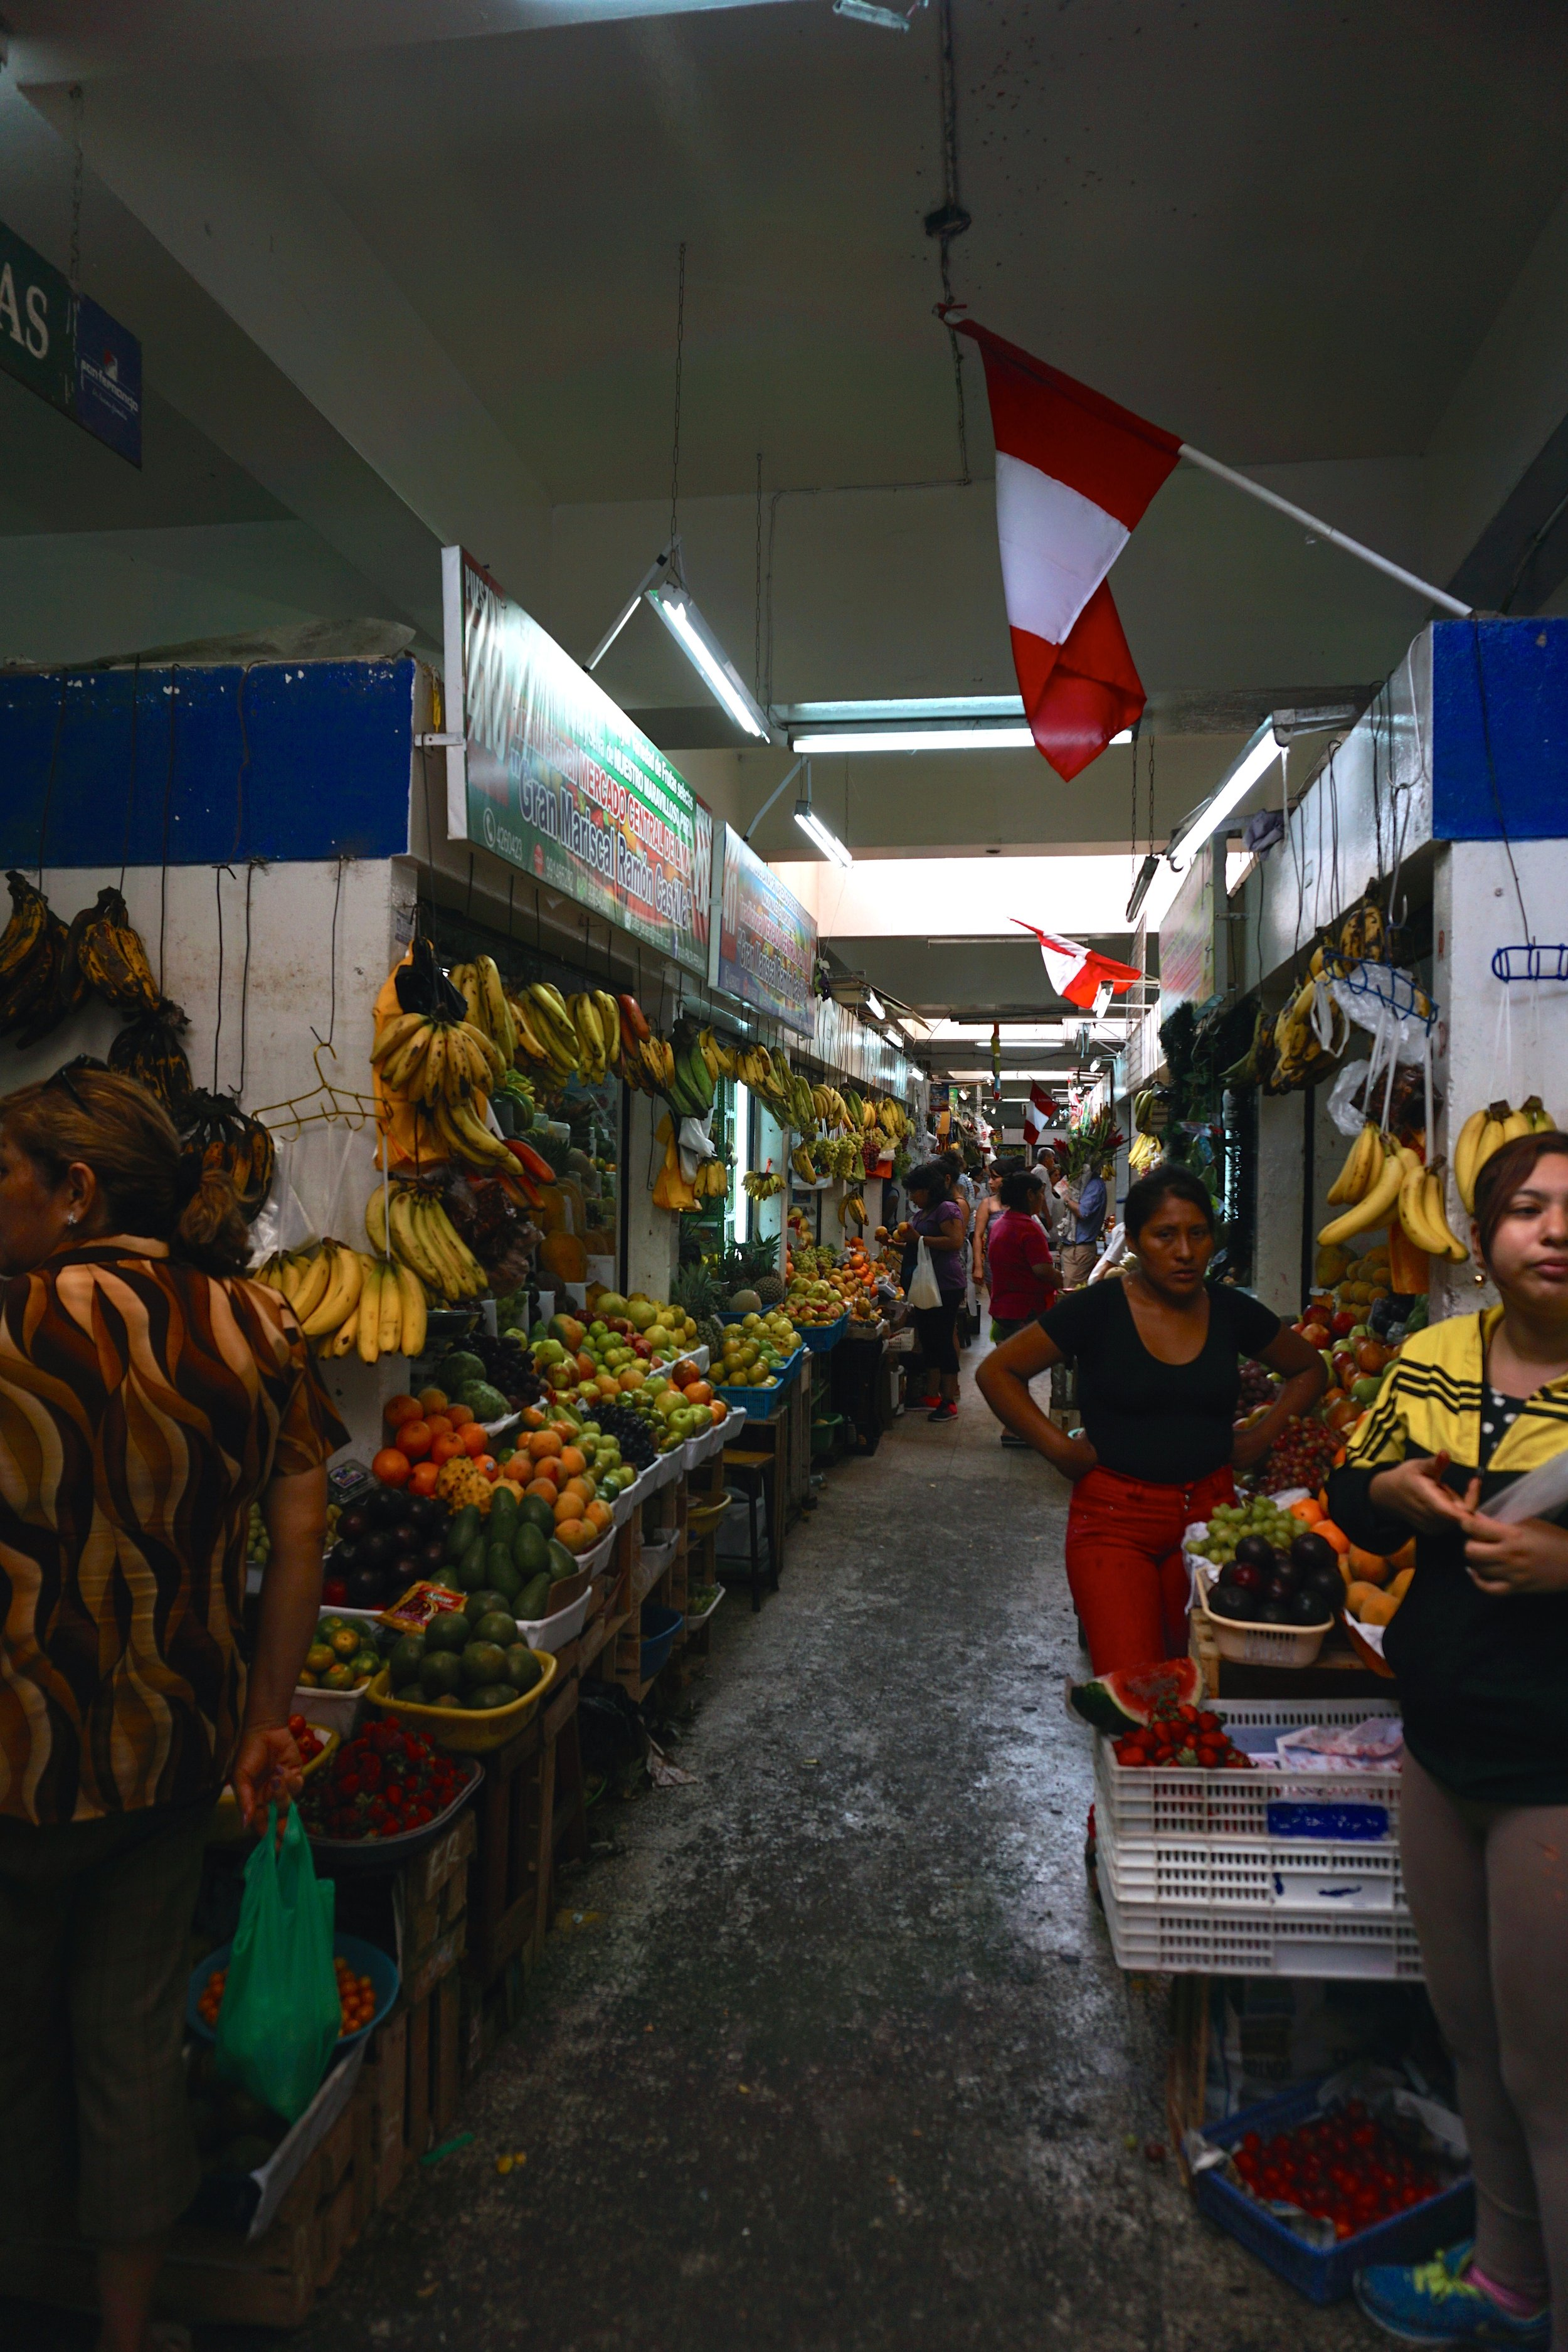 A lady unhappy that we snuck a photo in Lima's large central market.